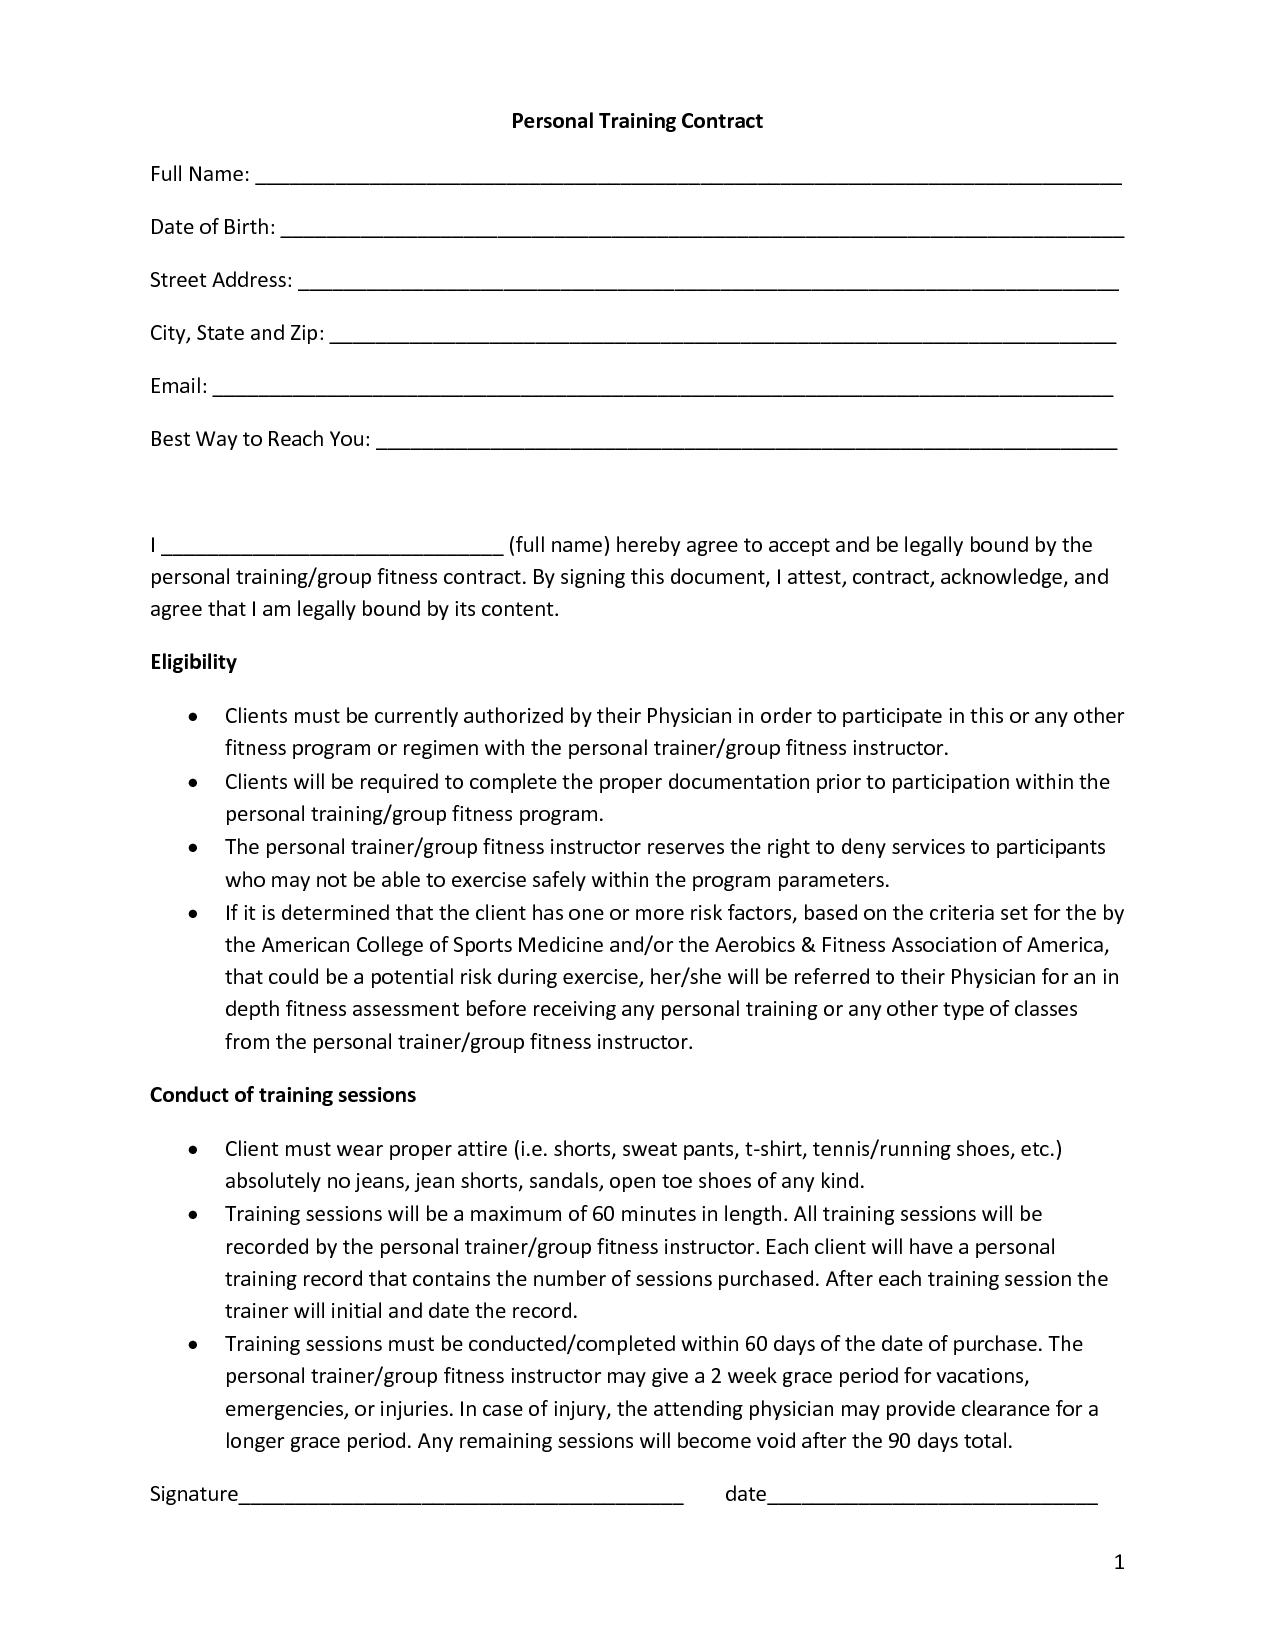 Personal Training Contract Full Name Date of Birth Street by – Training Agreement Contract